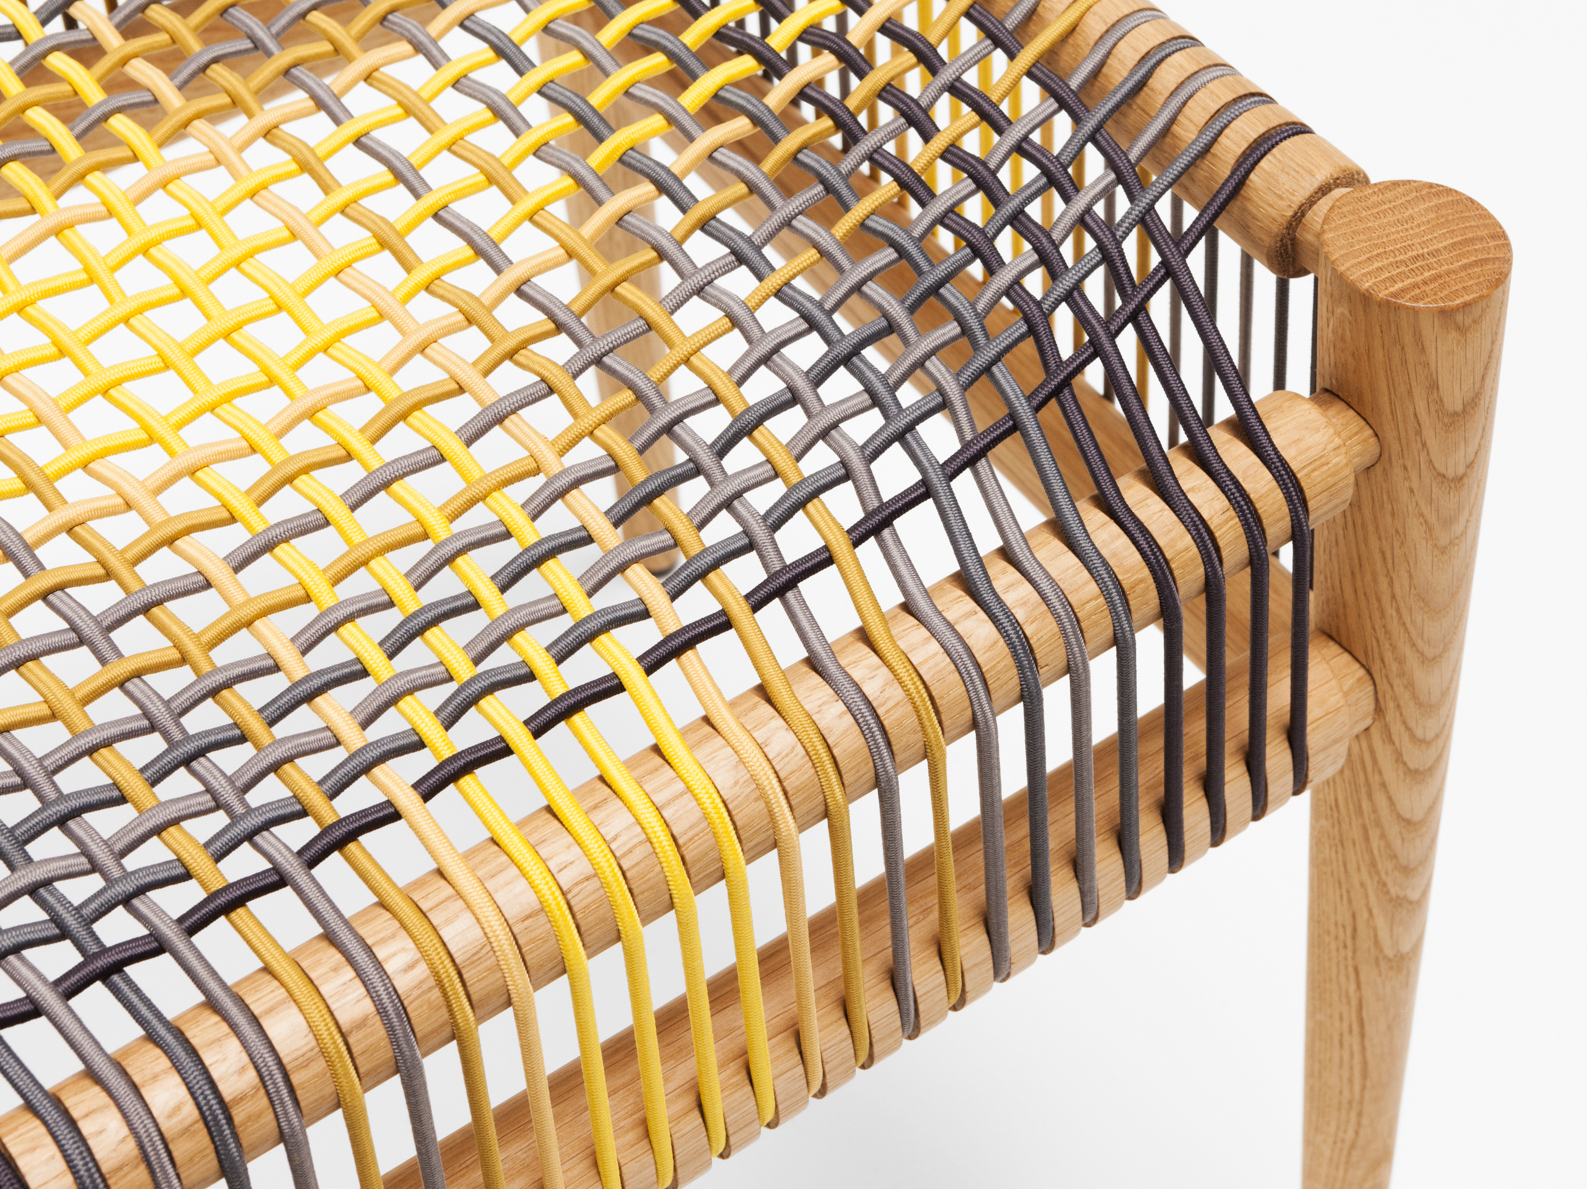 LOOM BY PTOLEMY MANN | Low Stool Loom Collection By H Furniture Design  Hierve, Ptolemy Mann